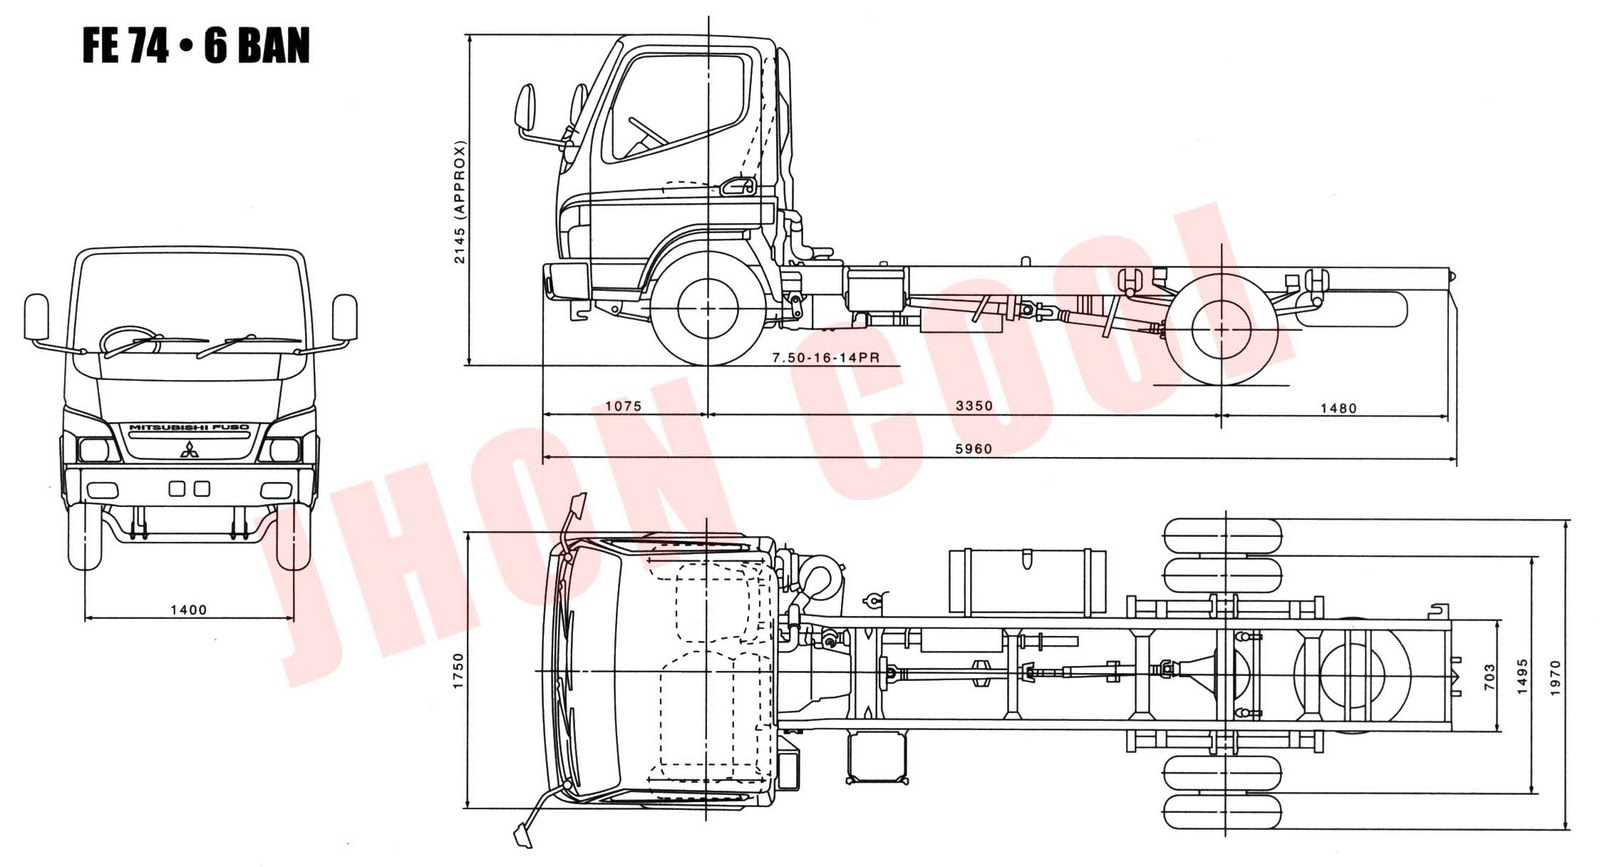 1999 Hino Engine Diagram Wiring Diagrams For Dummies Mitsubishi Fuso Canter Specifications Mercruiser Parts Drawing